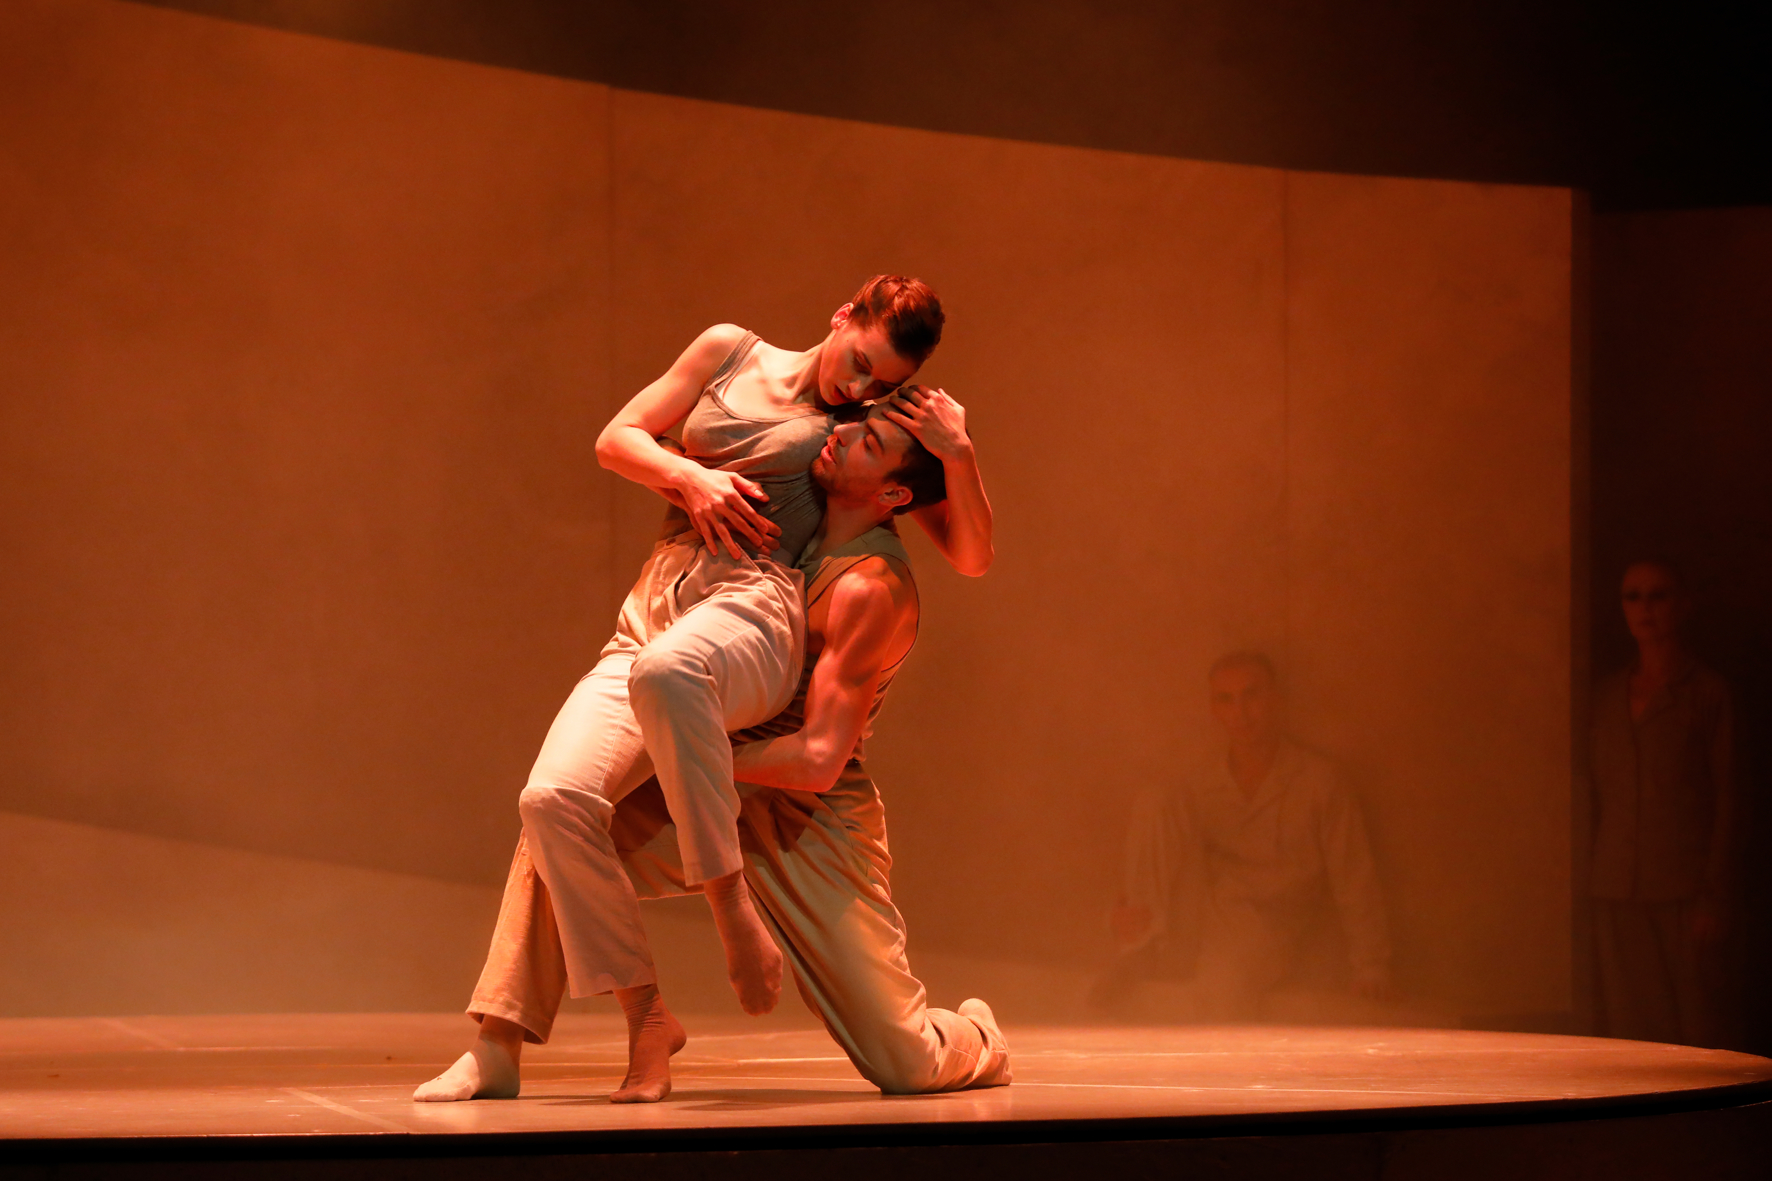 A male and female dancer in a light suit on a stage in orange lights. He is on one knee and she leans on him and has his head in her hands.